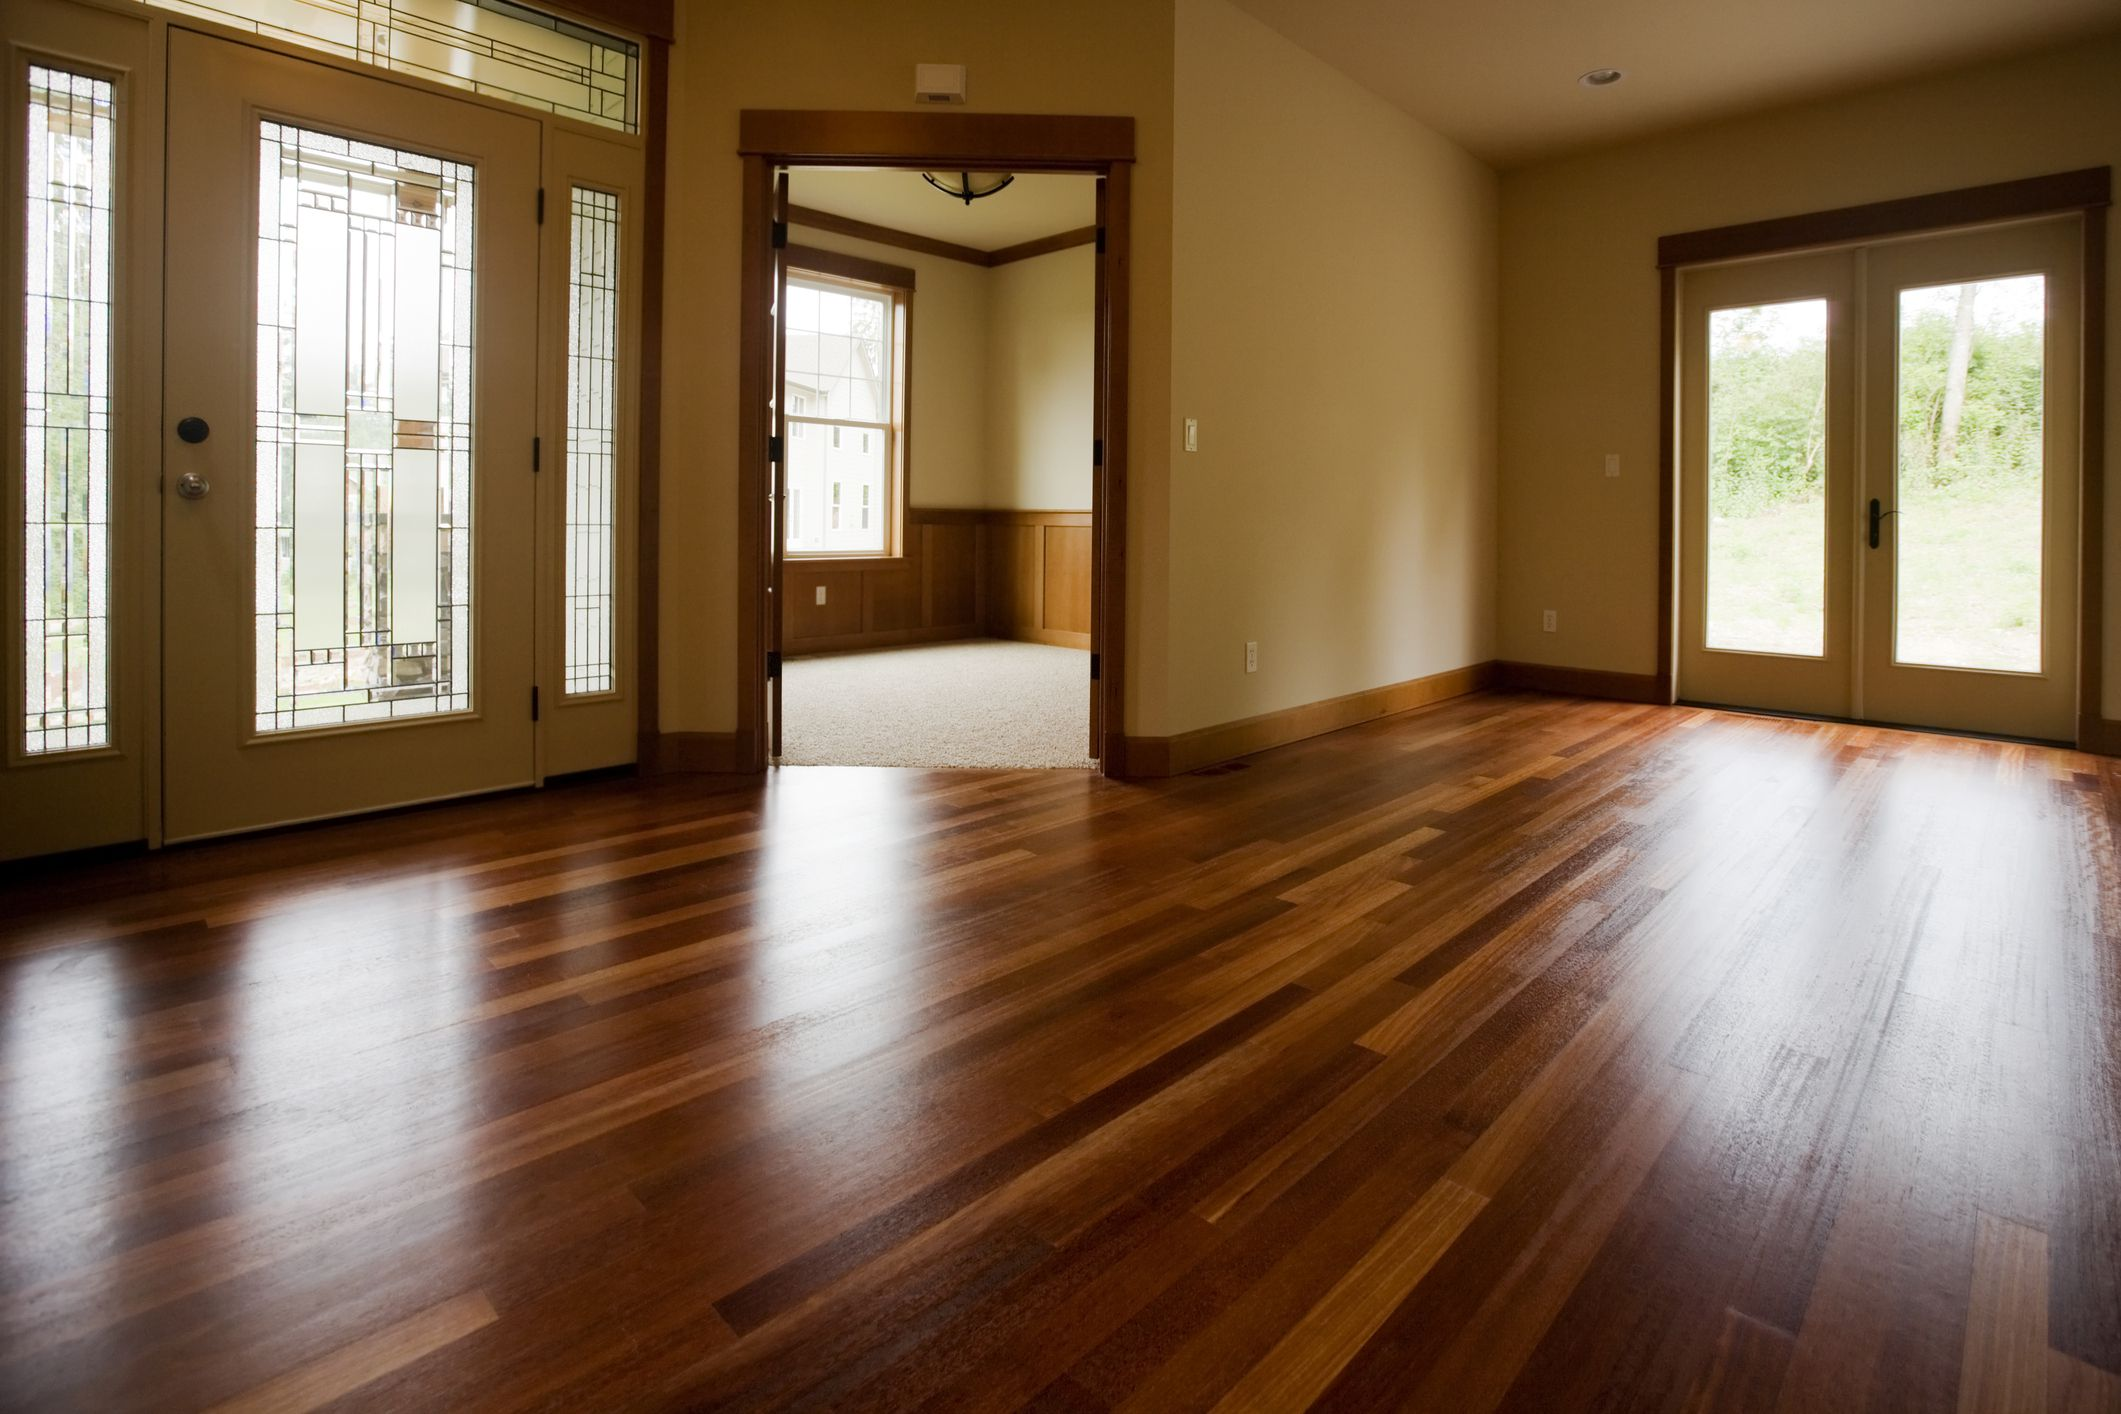 american fun floor home facts flooring hardwood select wood